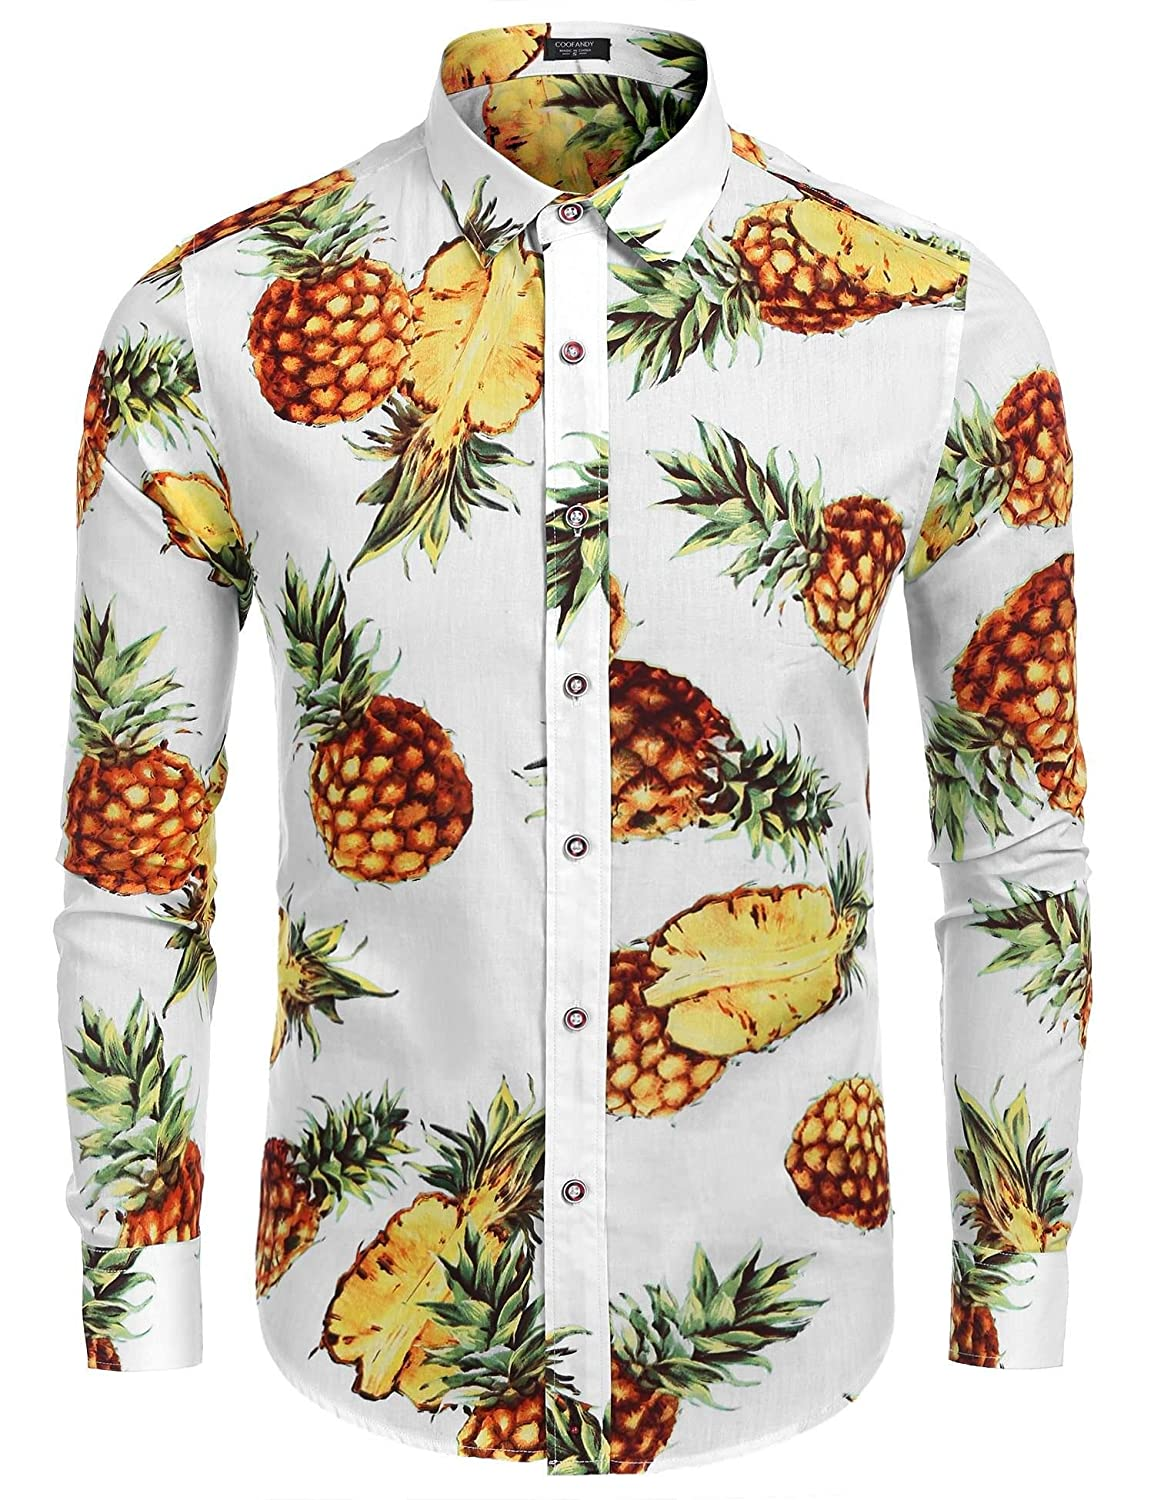 COOFANDY Men's Floral Print Slim Fit Long Sleeve Casual Button Down Shirt AMJ005228